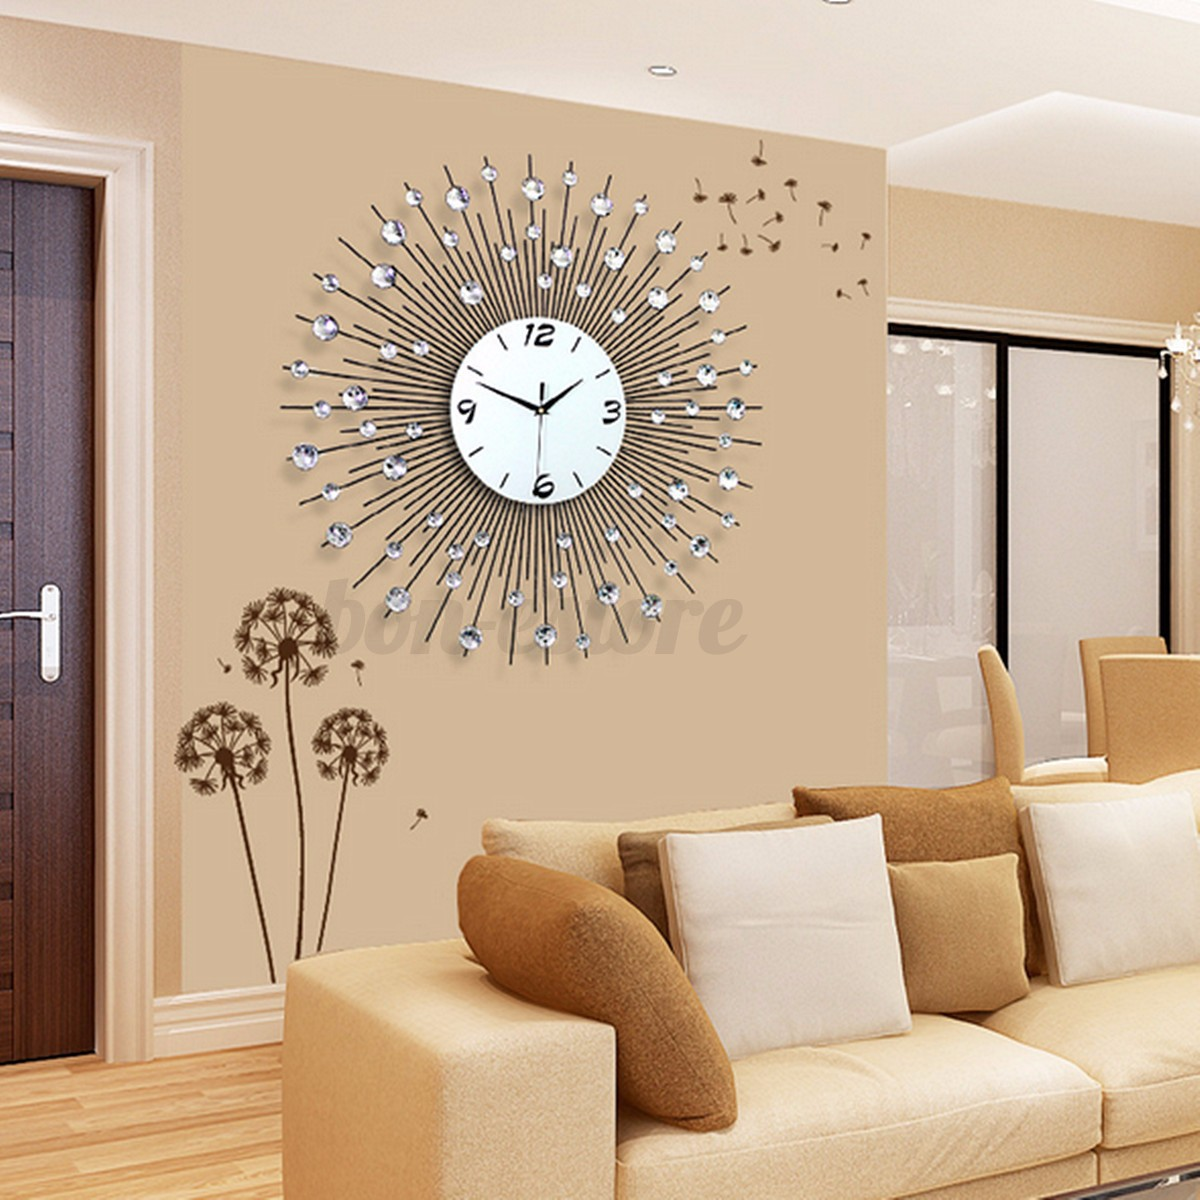 iron art metal living bed room round diamond wall clock watch home wall decor us ebay. Black Bedroom Furniture Sets. Home Design Ideas